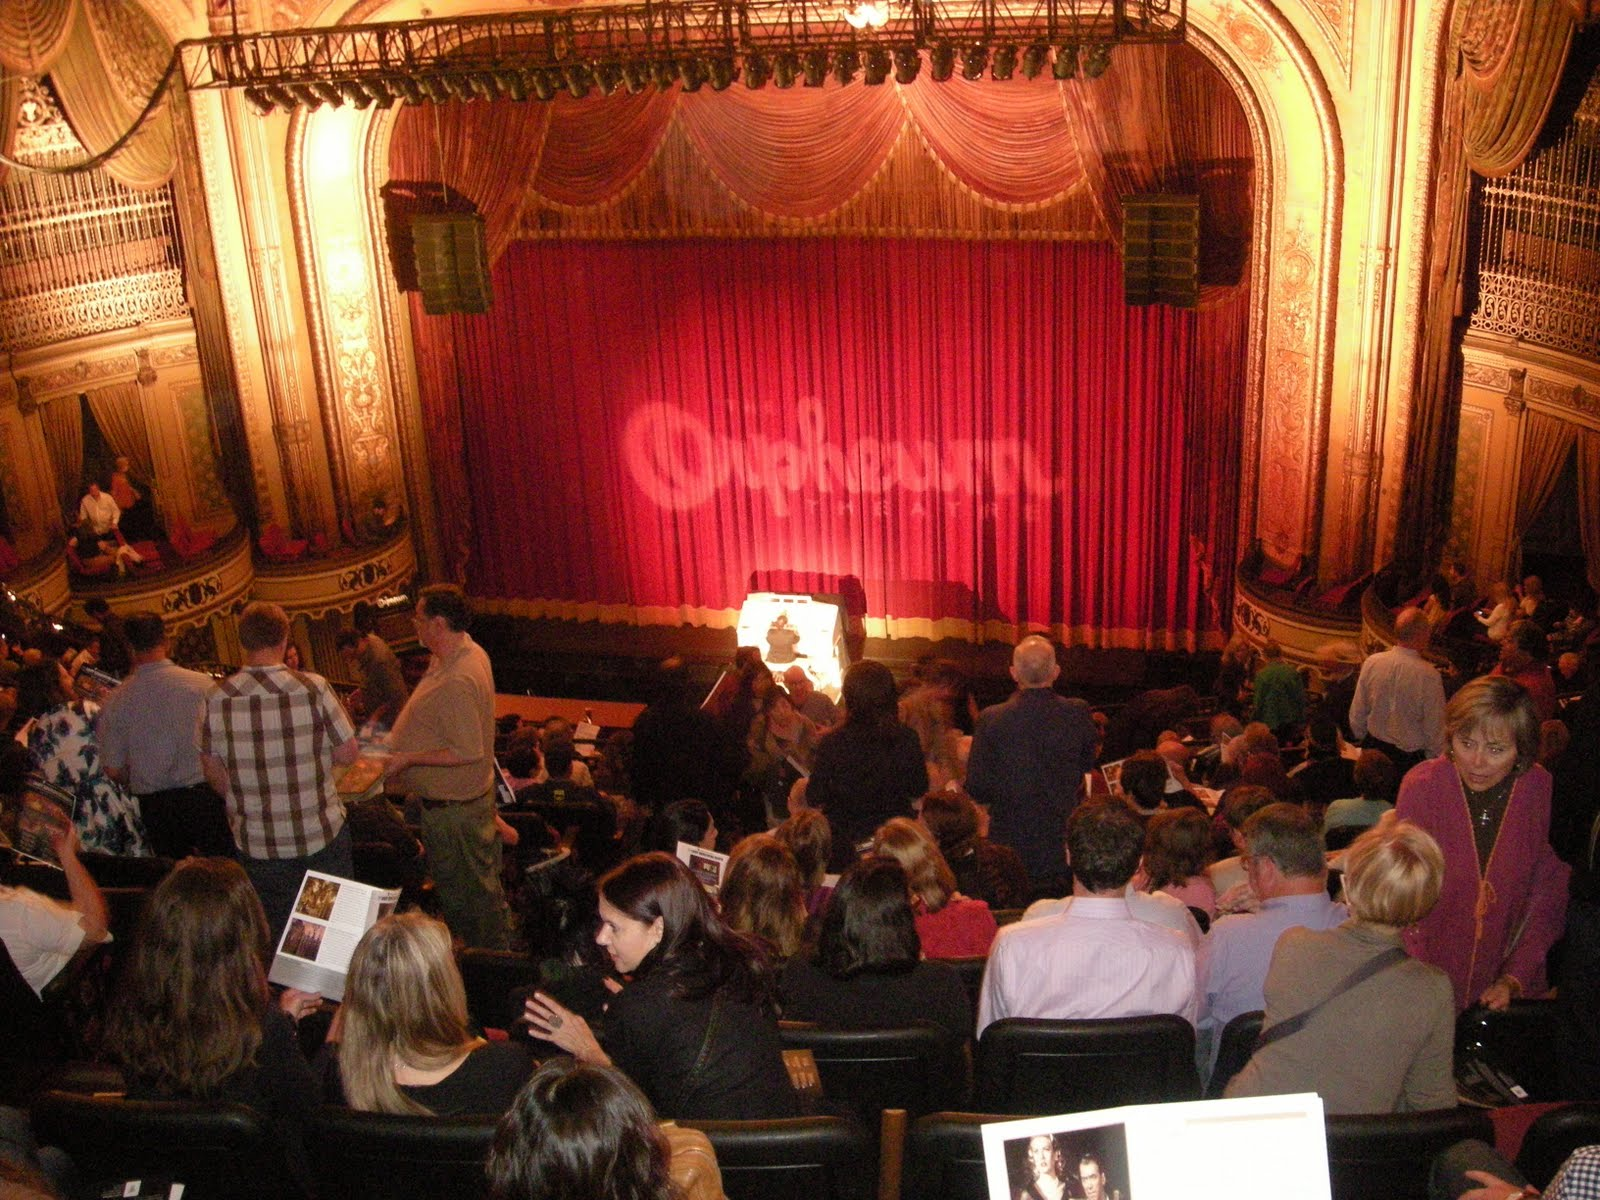 Pantages Theatre Los Angeles, Cruise Director Los Angeles to Cruise Director Louisville Area ...